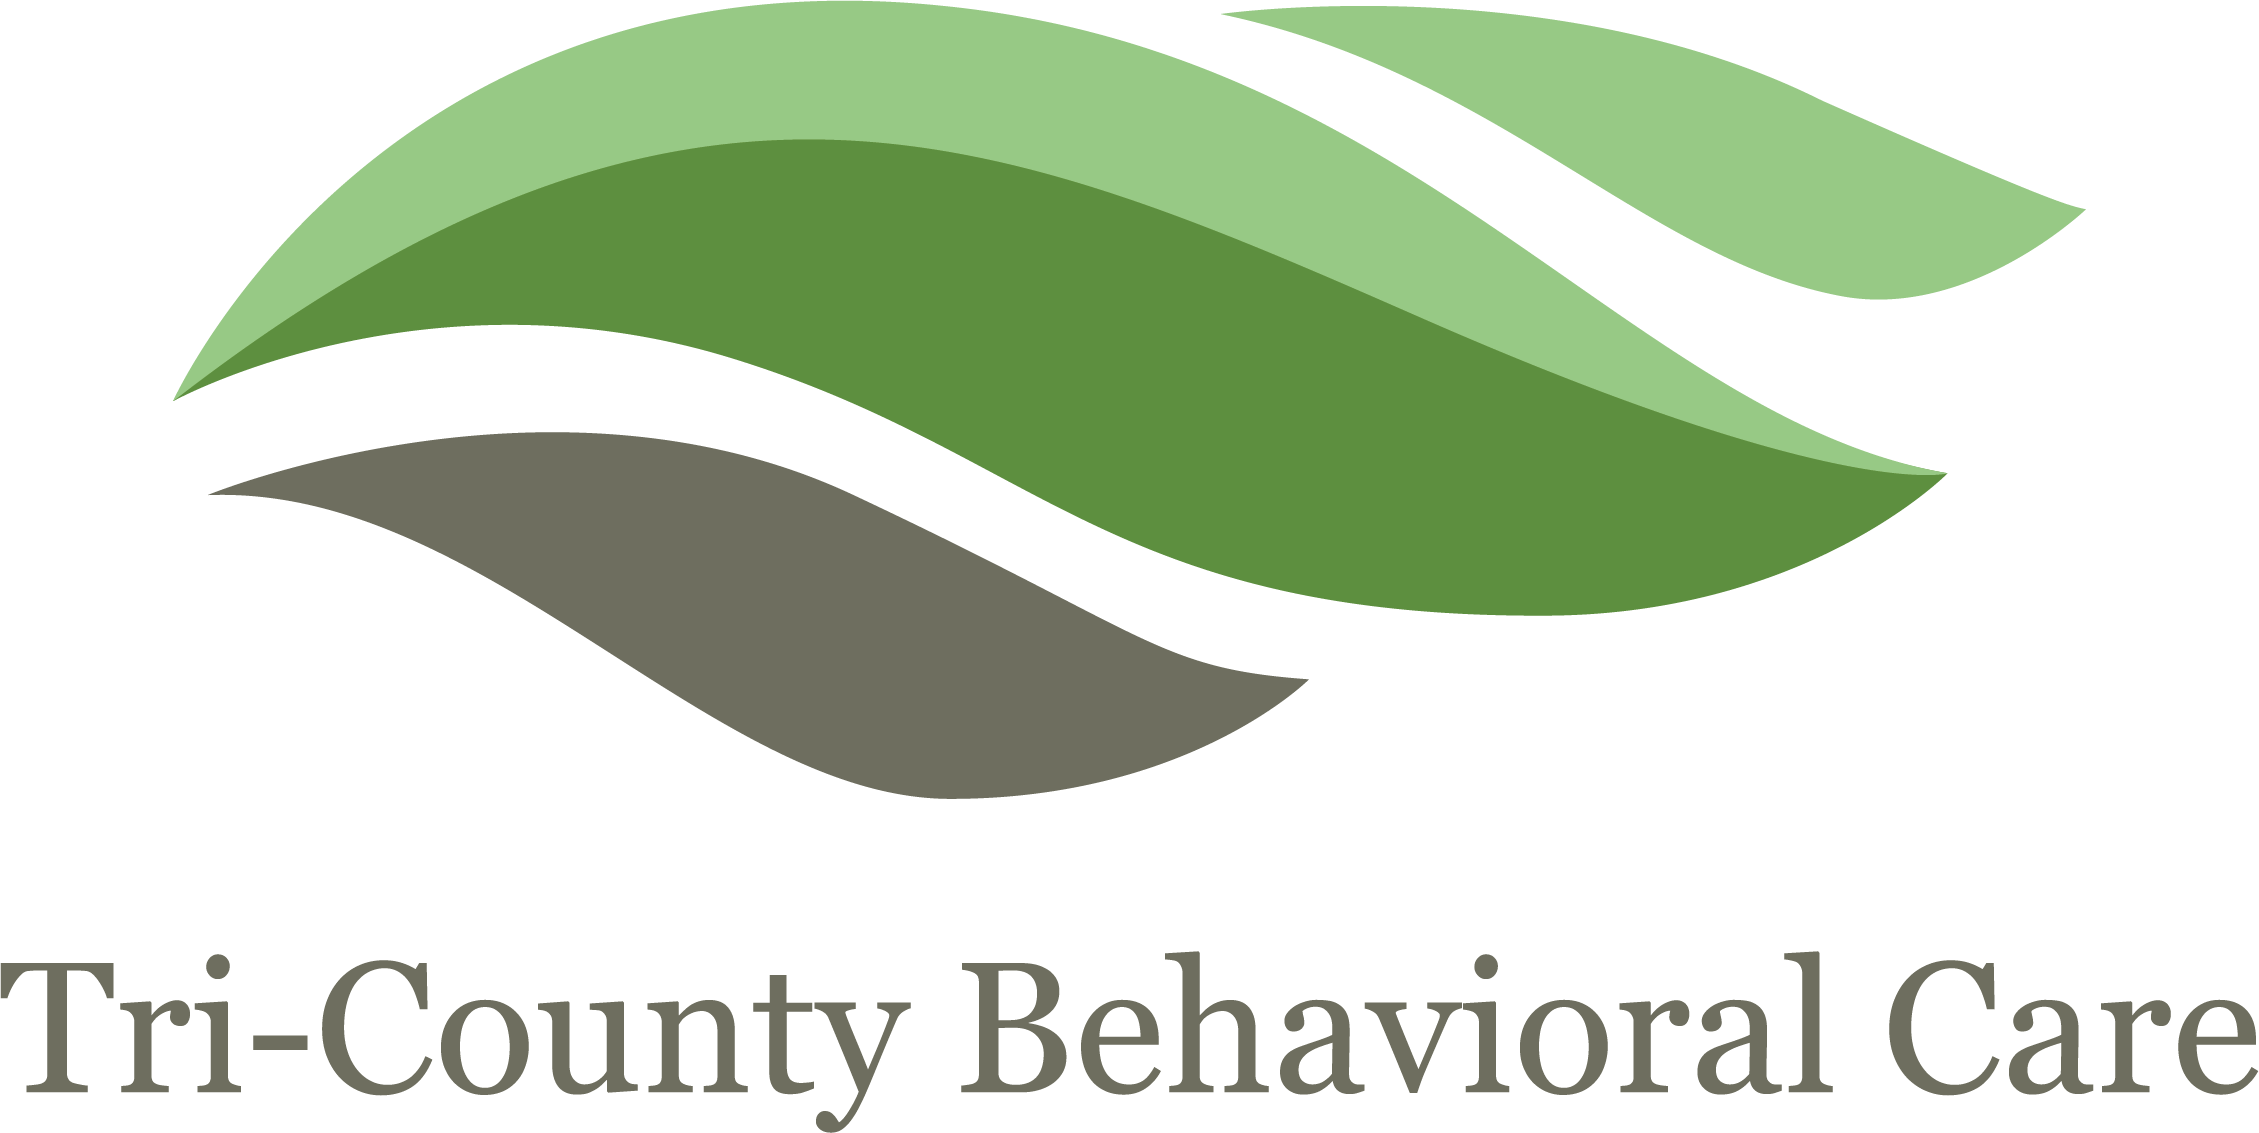 Tri-County Behavioral Care